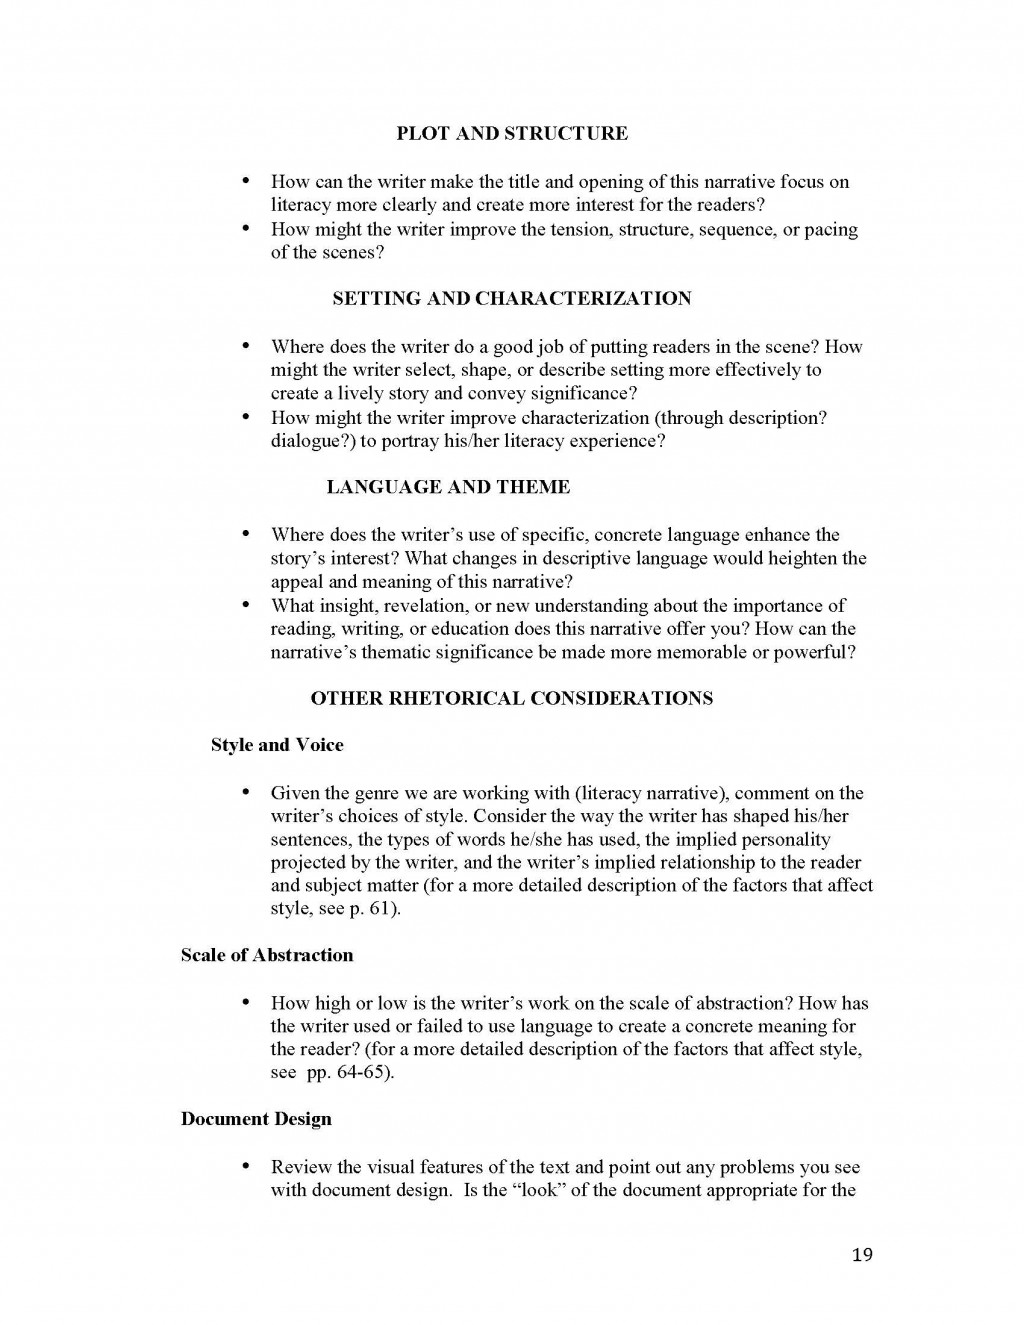 017 Unit 1 Literacy Narrative Instructor Copy Page 19 Example Of Imposing A Essay Short About Love Examples Yourself Pdf Large